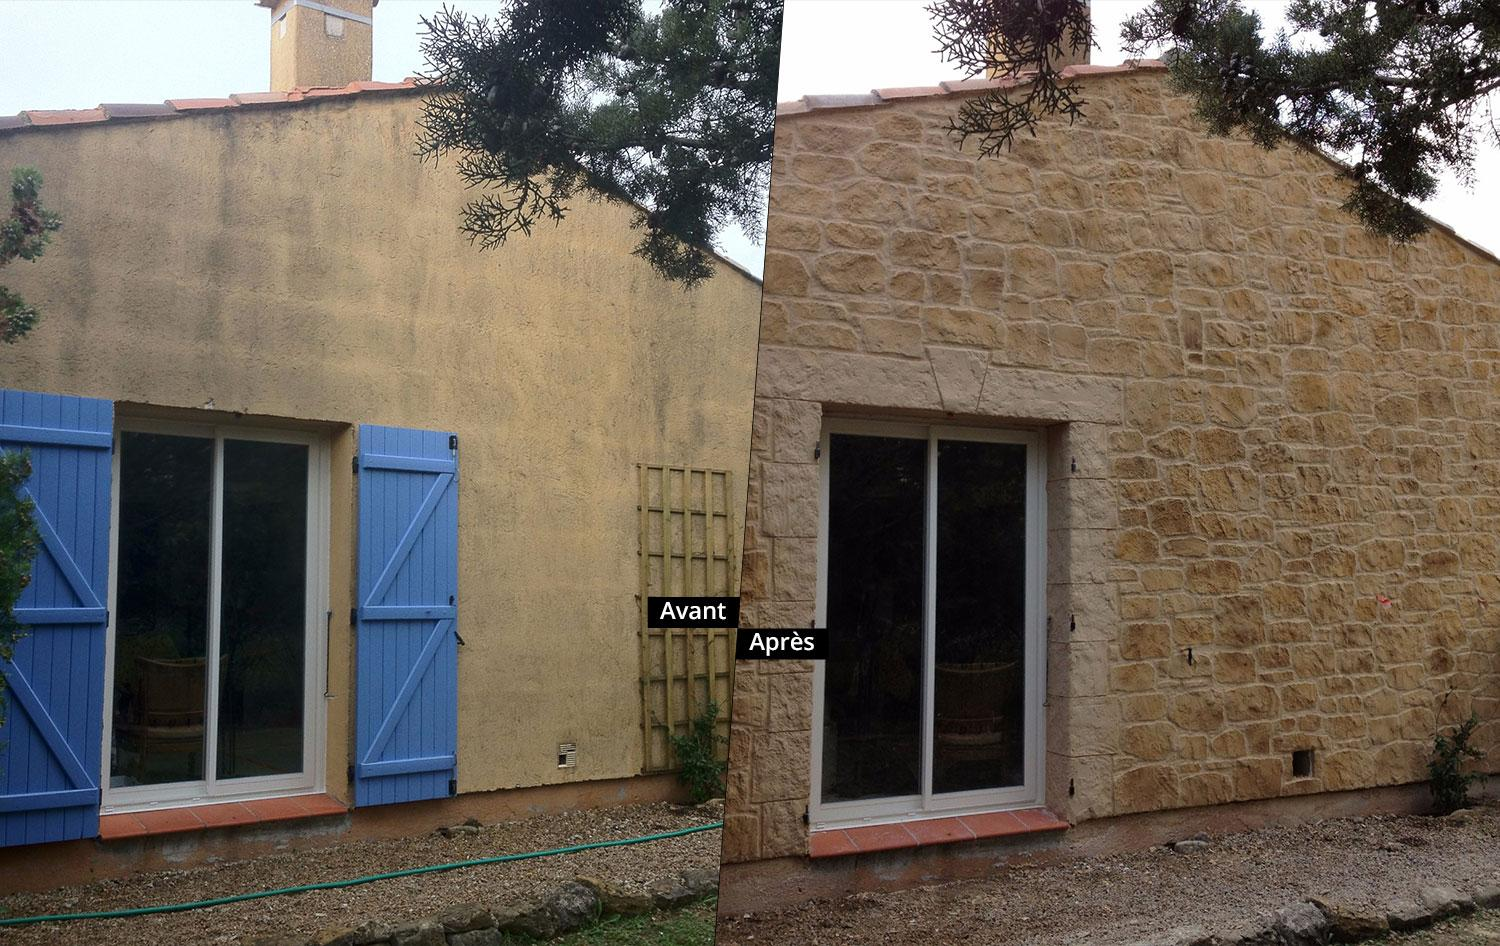 R novation fa ade maison par azur pro renov r novation for Renovation maison exterieur avant apres